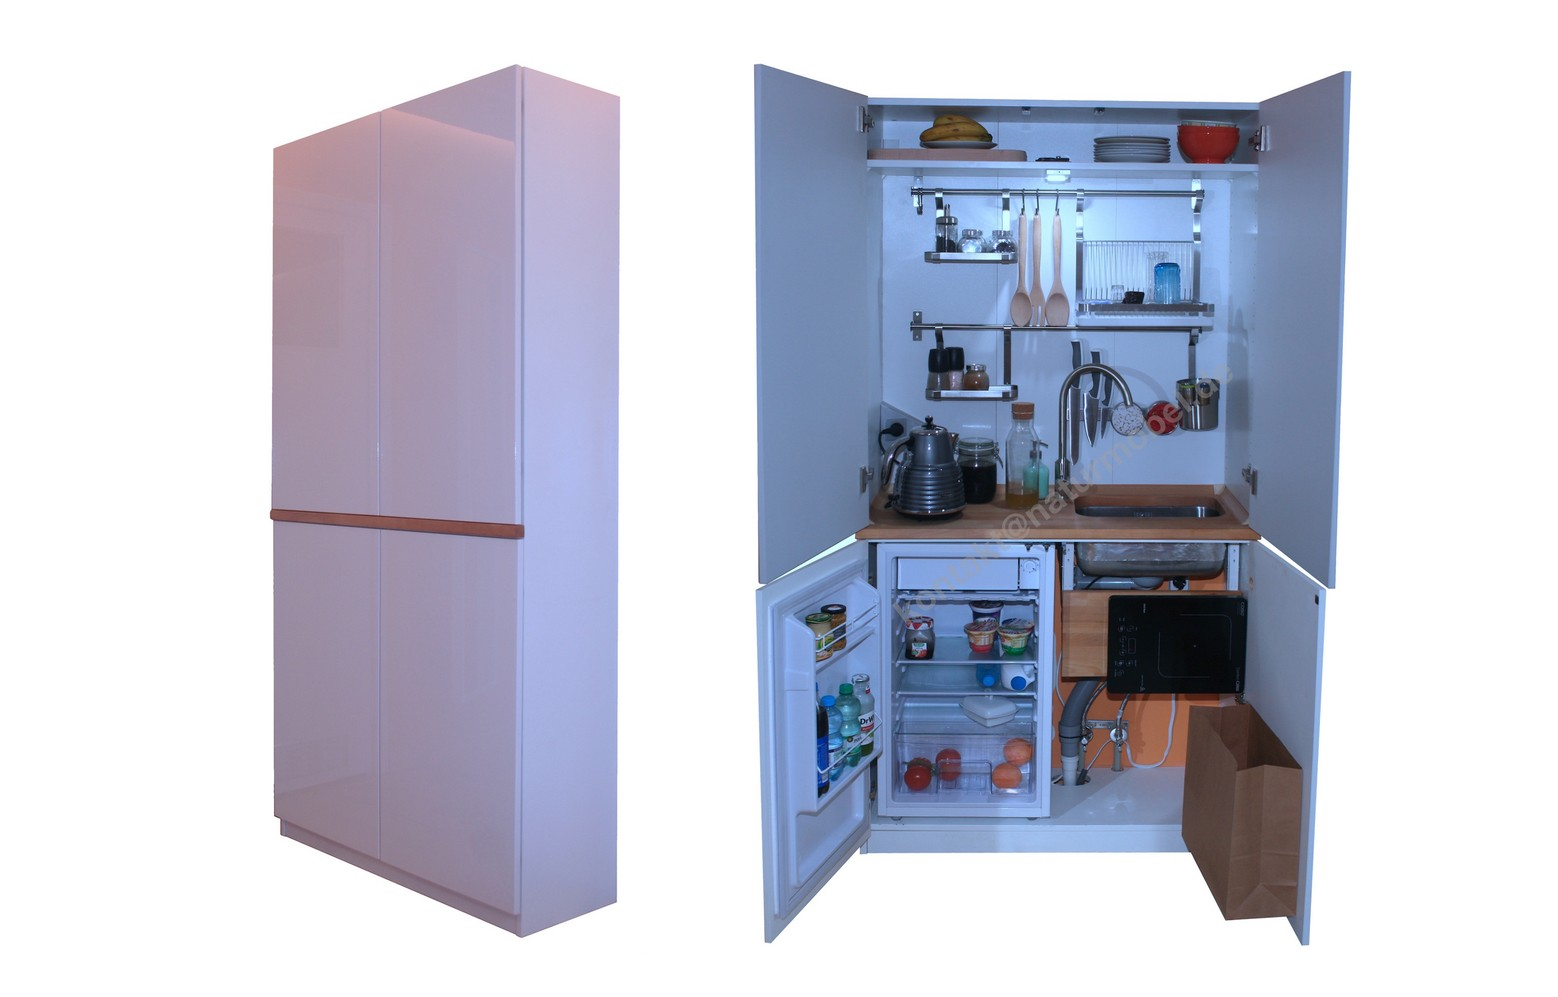 Mini cabinet closed cupboard kitchen for small apartments (200*100*37cm)